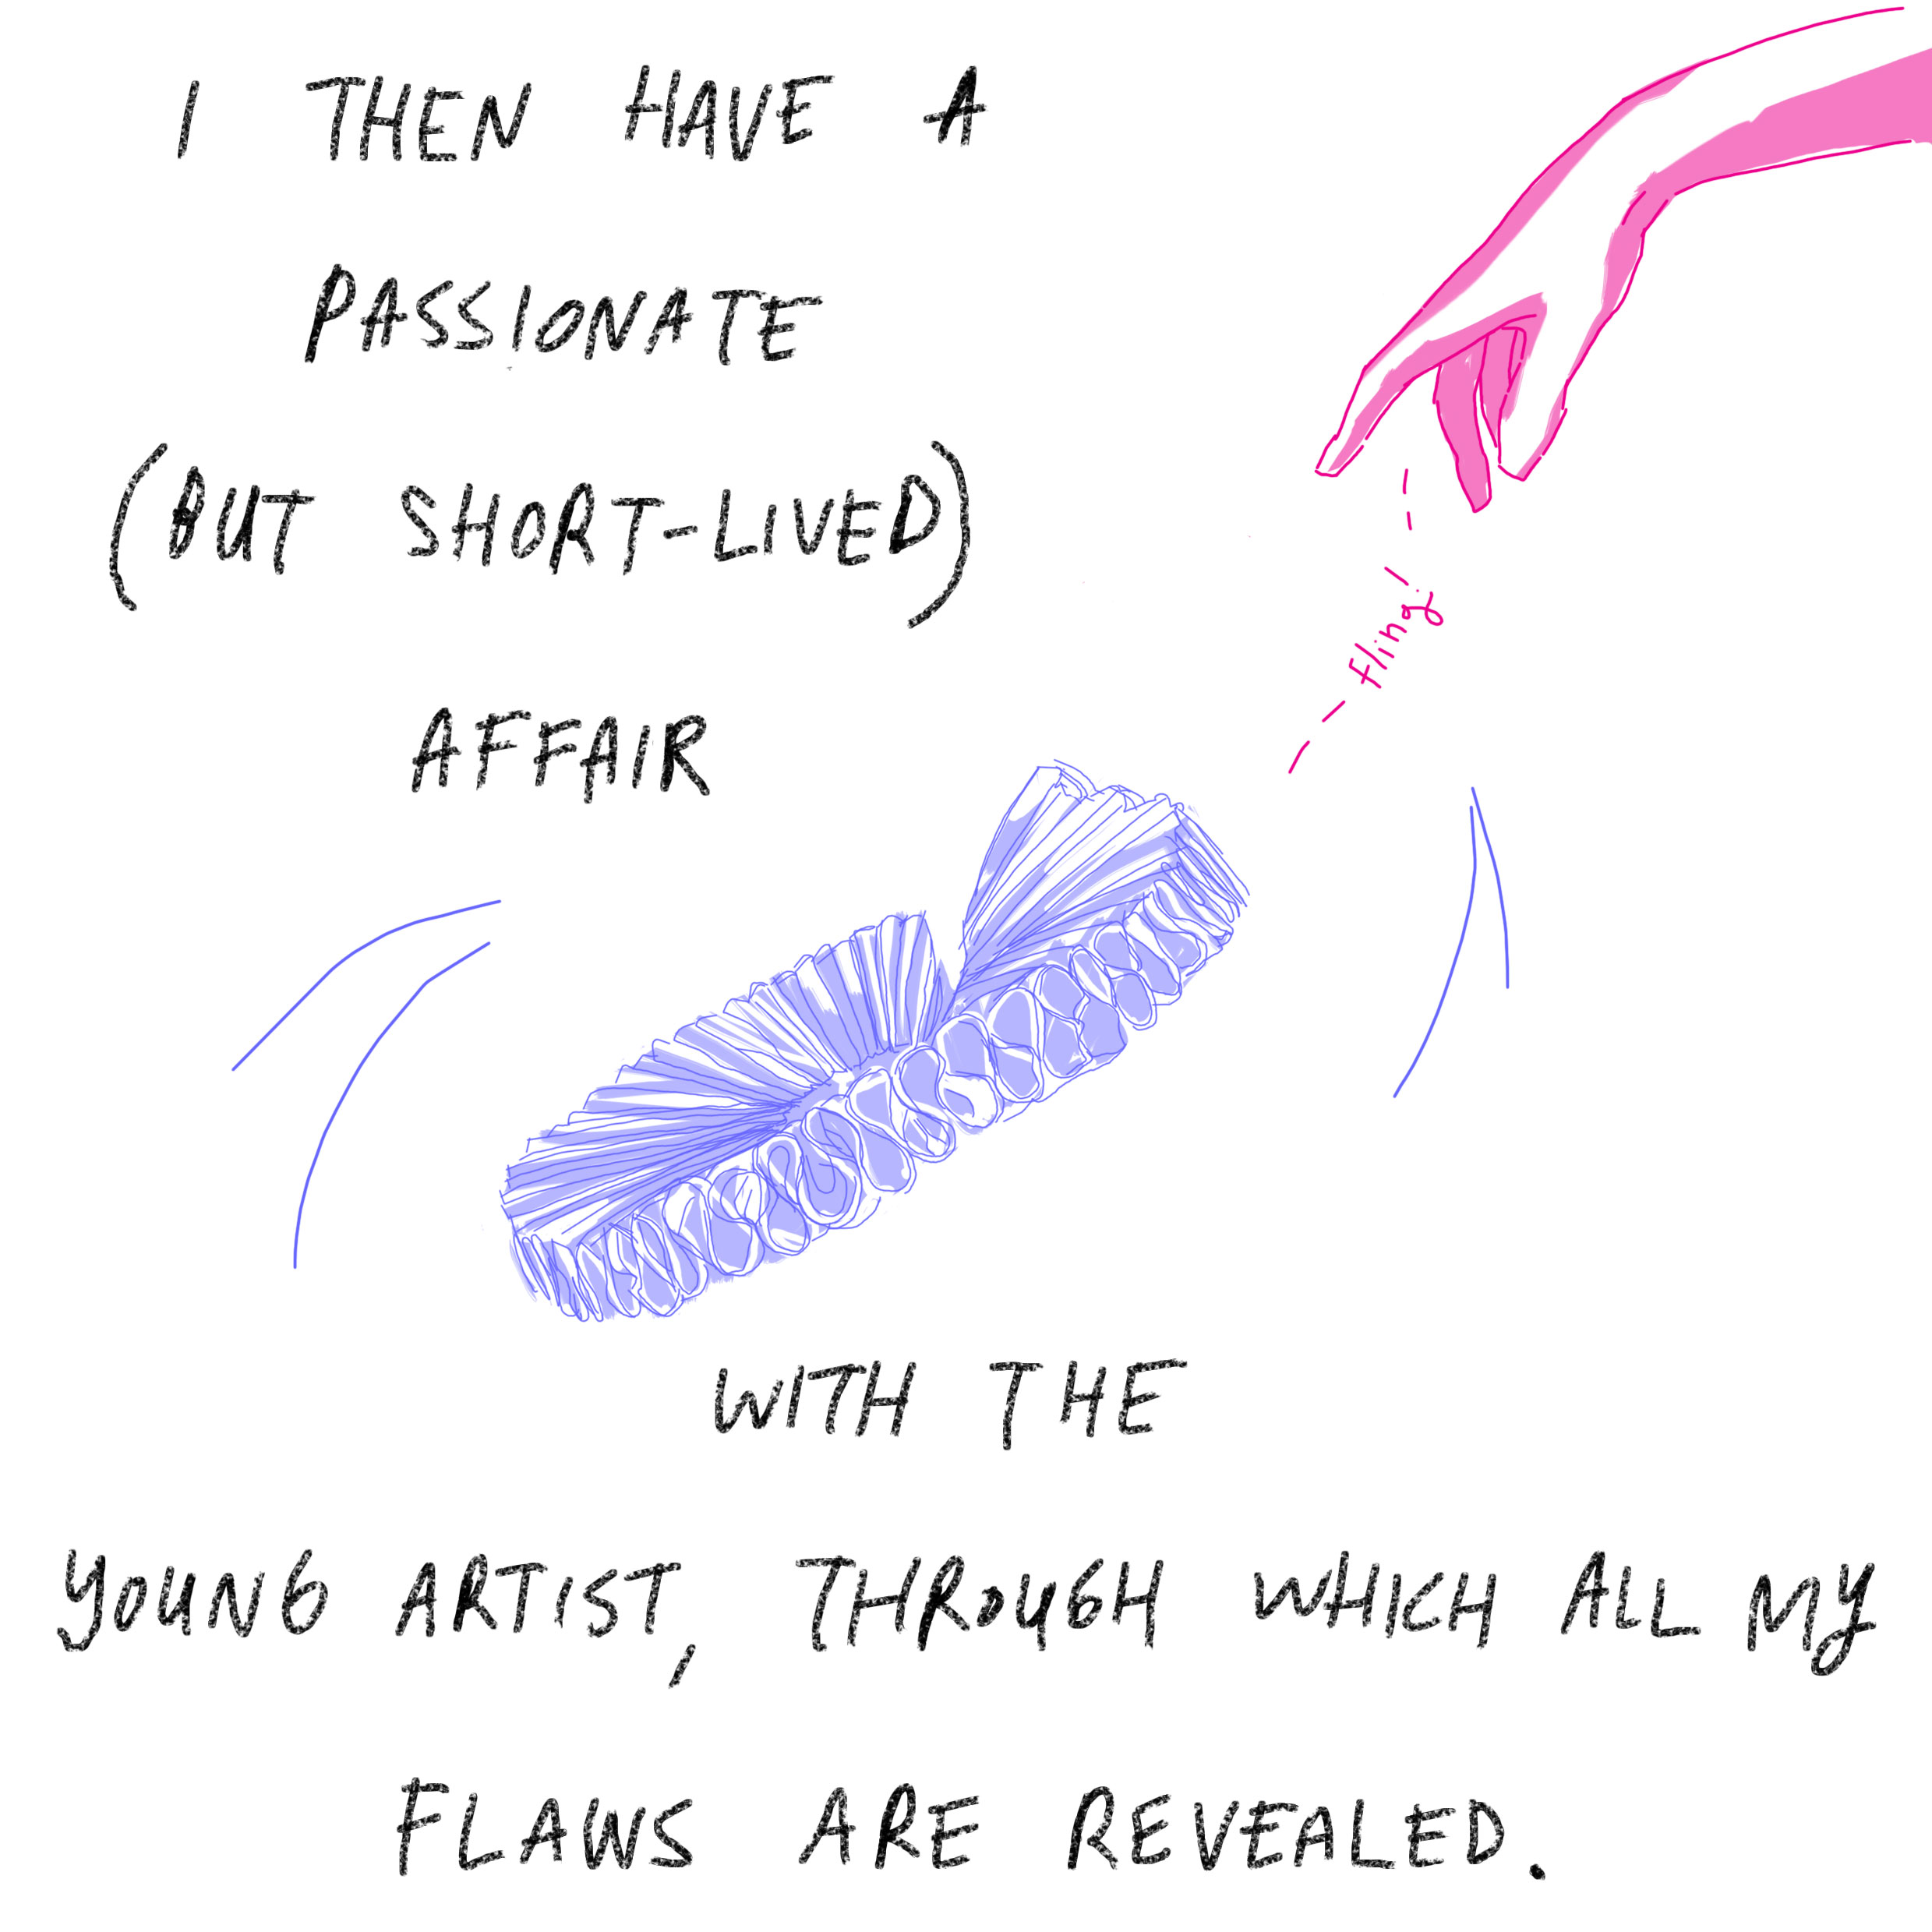 'I then have a passionate (but short-lived) affair with the young artist, through which all my flaws are revealed.'